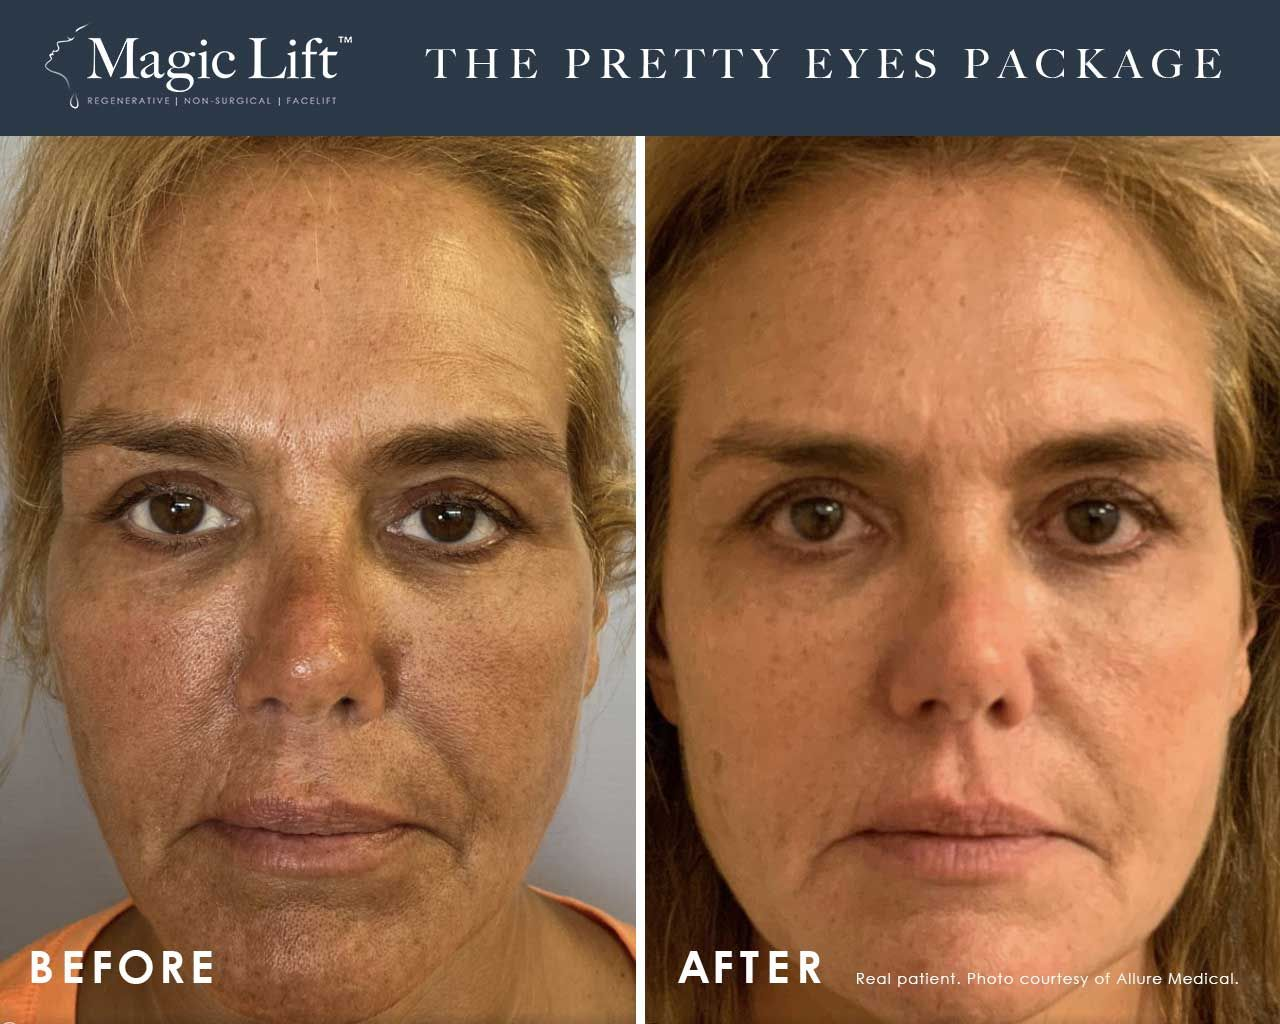 Before and After Magic Lift (Non-Surgical Face Lift) treatment #1